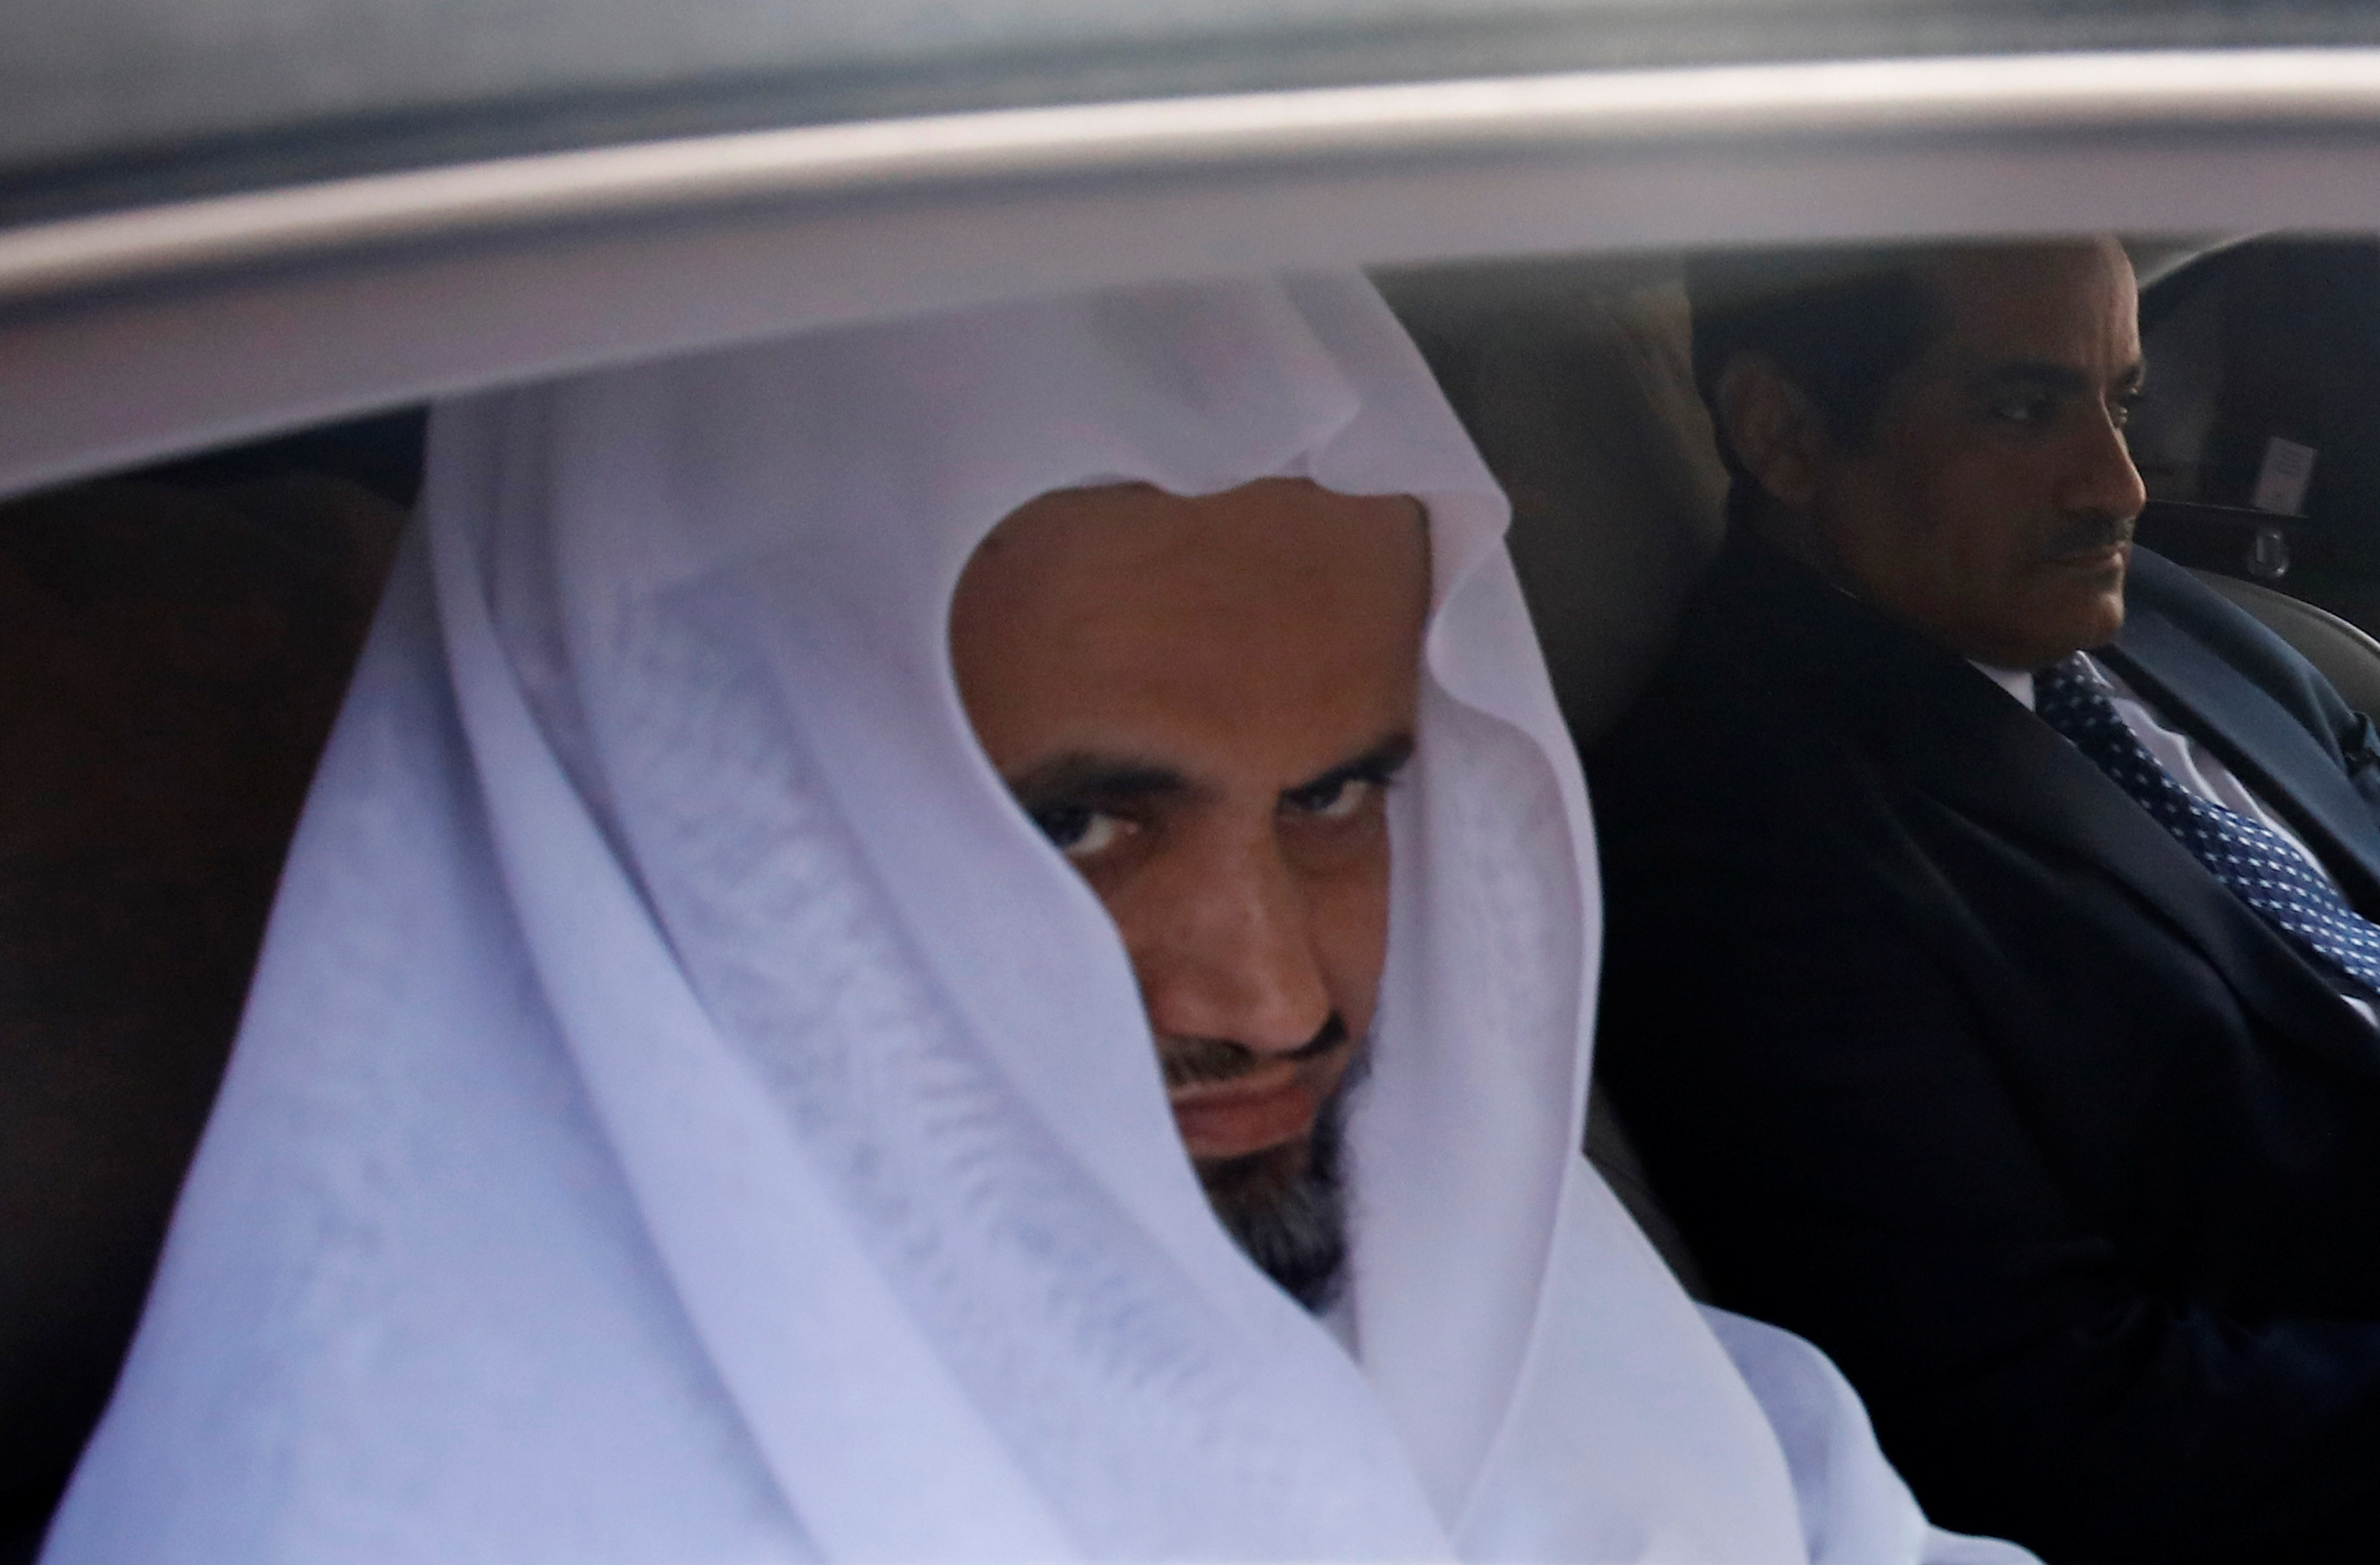 Saudi public prosecutor Saud Al Mojeb leaves from Saudi Arabia's consulate in Istanbul, Turkey October 30, 2018. REUTERS/Kemal Aslan